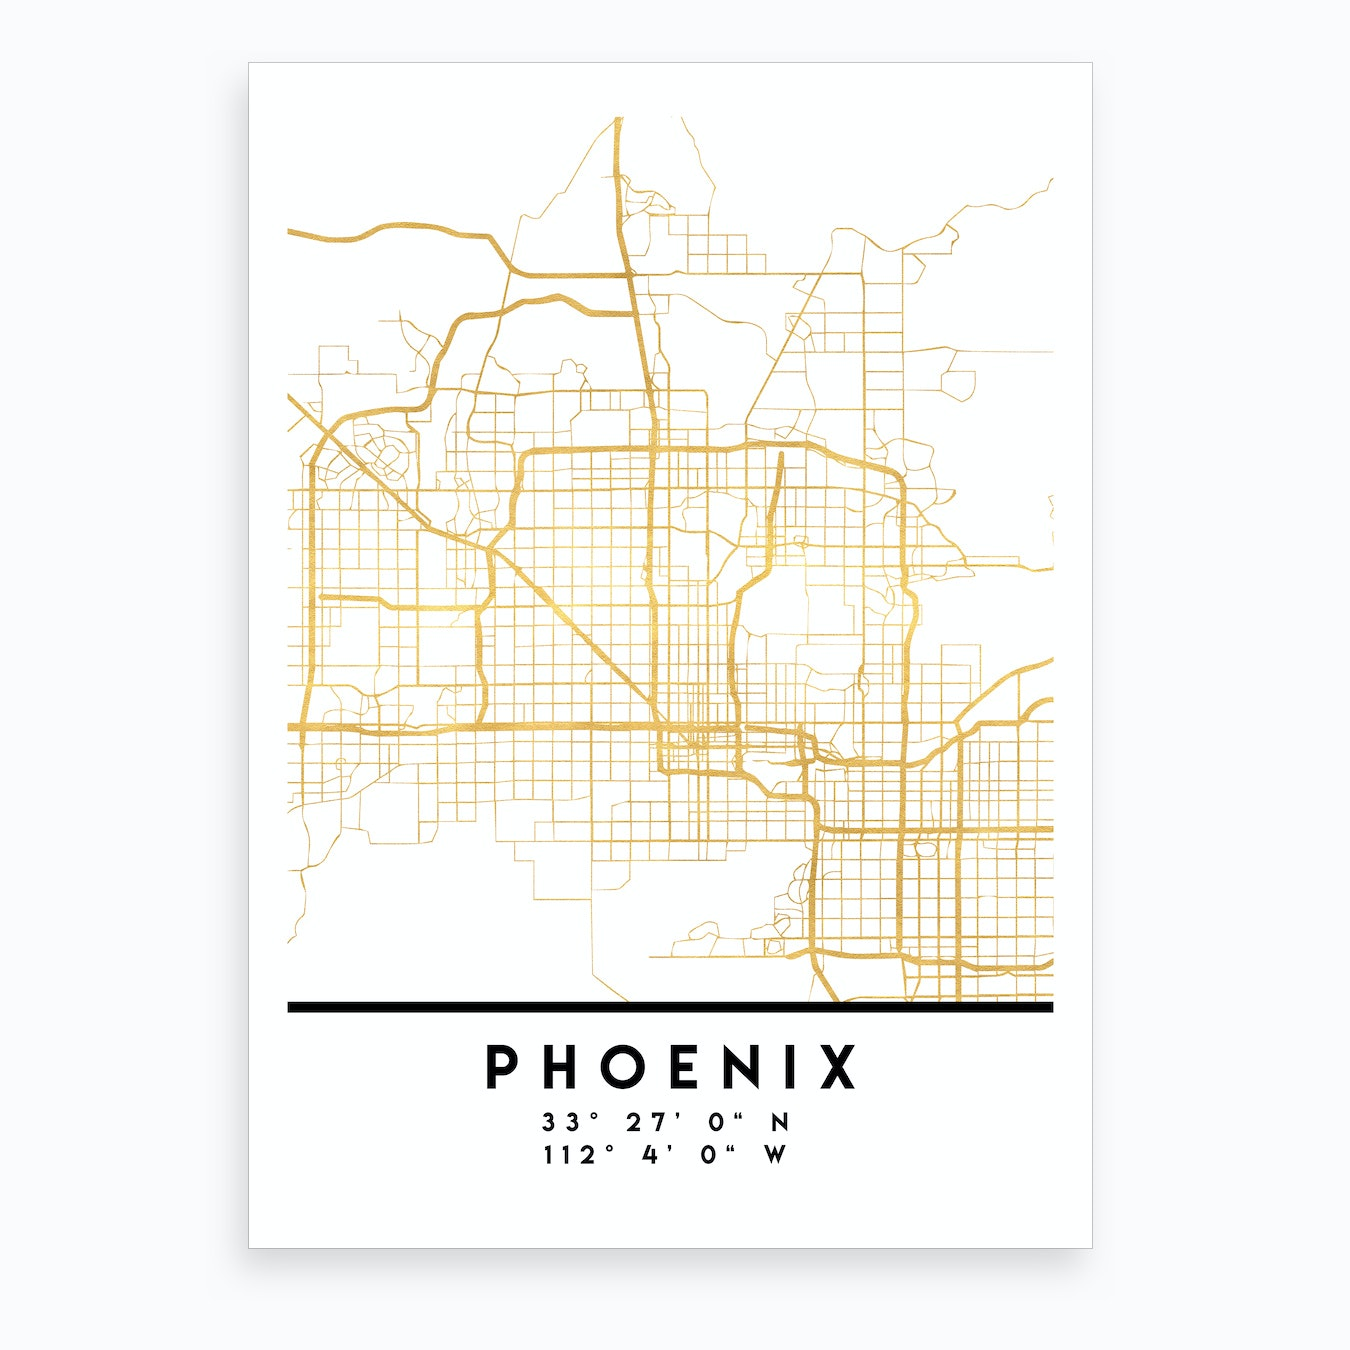 Phoenix Arizona City Street Map Art Print on town of fountain hills map, city of oakland map, town of oro valley map, town of payson map, city of mesa map, phoenix city parks map, city of cincinnati map, phoenix az map, university of phoenix map, phoenix zip code map, city of chandler map, city of atlanta map, phoenix city council district map, interactive us highway map, city of peoria map, phoenix street map, arizona map, city of houston map, city of buckeye map, phoenix weather map,